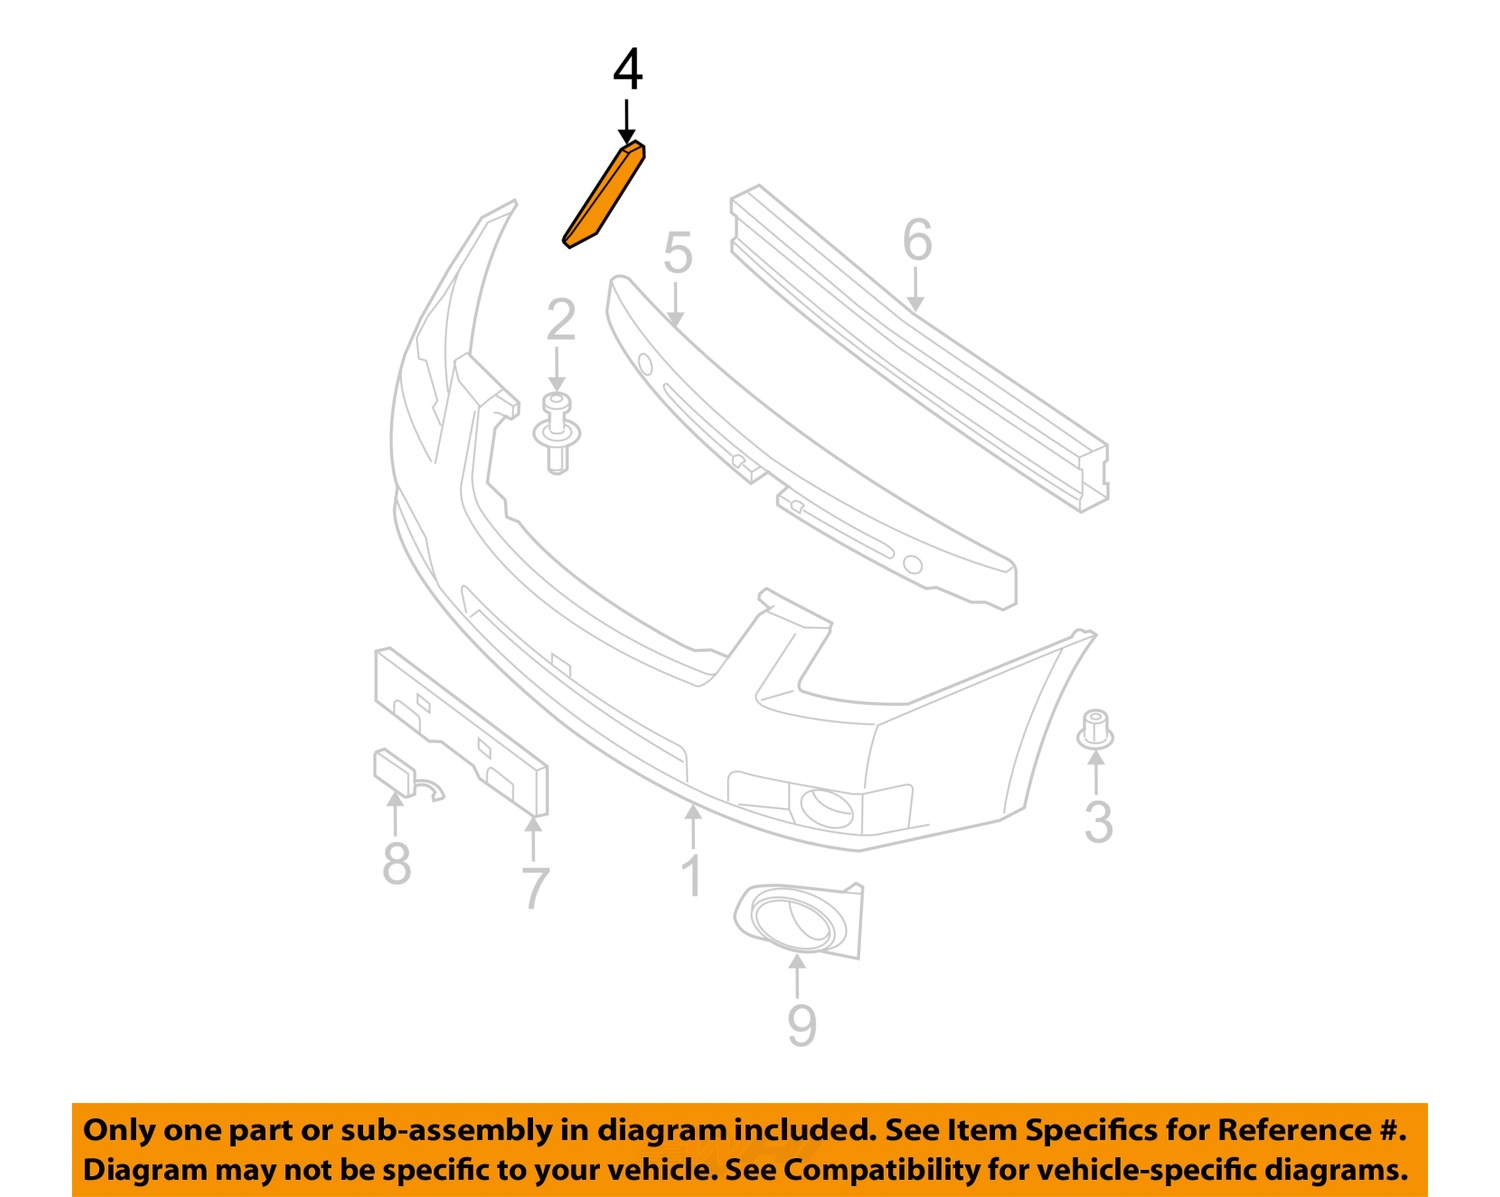 hight resolution of  4 on diagram only genuine oe factory original item